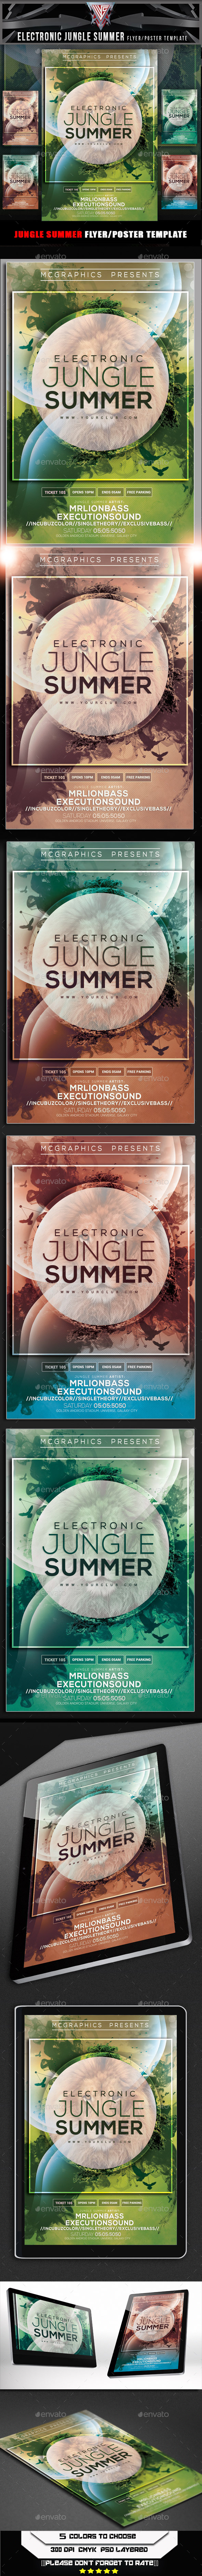 GraphicRiver Electronic Jungle Summer Flyer Template 11107133